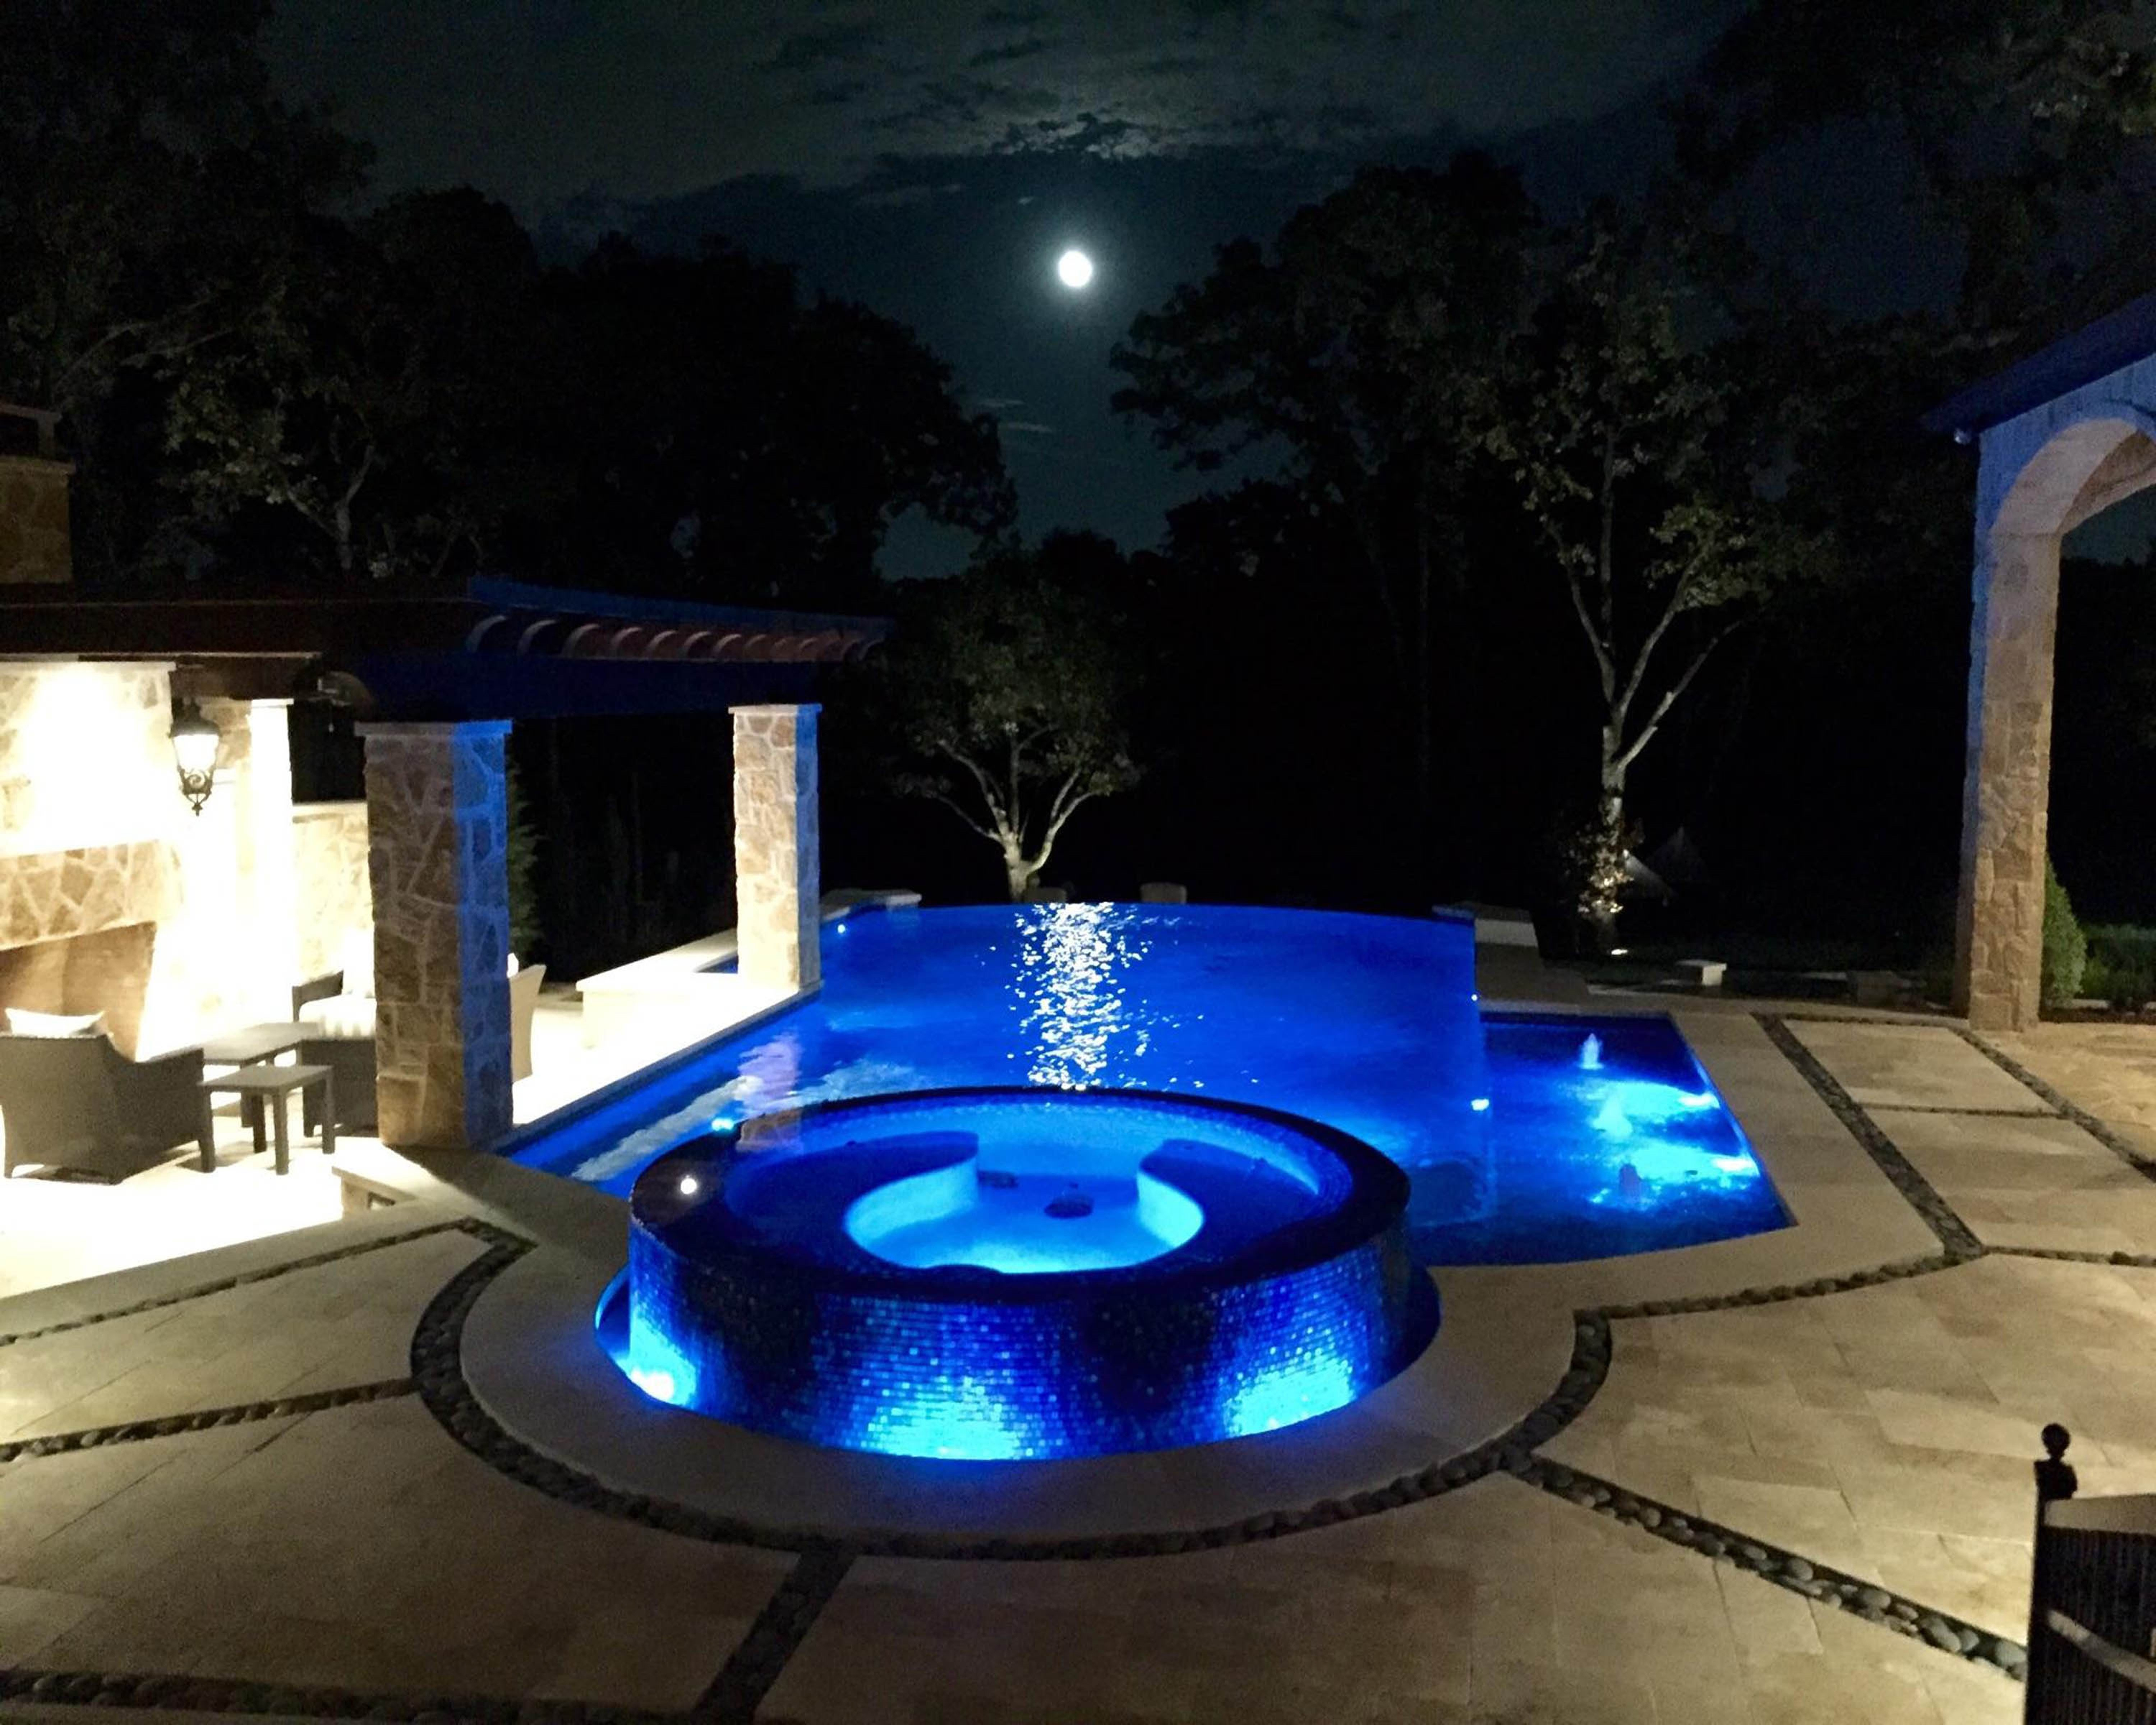 Negative Edge pool with 360 degree infinity edge spa, Travertine decking with Black Mexican pebble inlay. Glass tile. Bubblers, Wet Edge Indigo Blue plaster & Zodiac Equipment